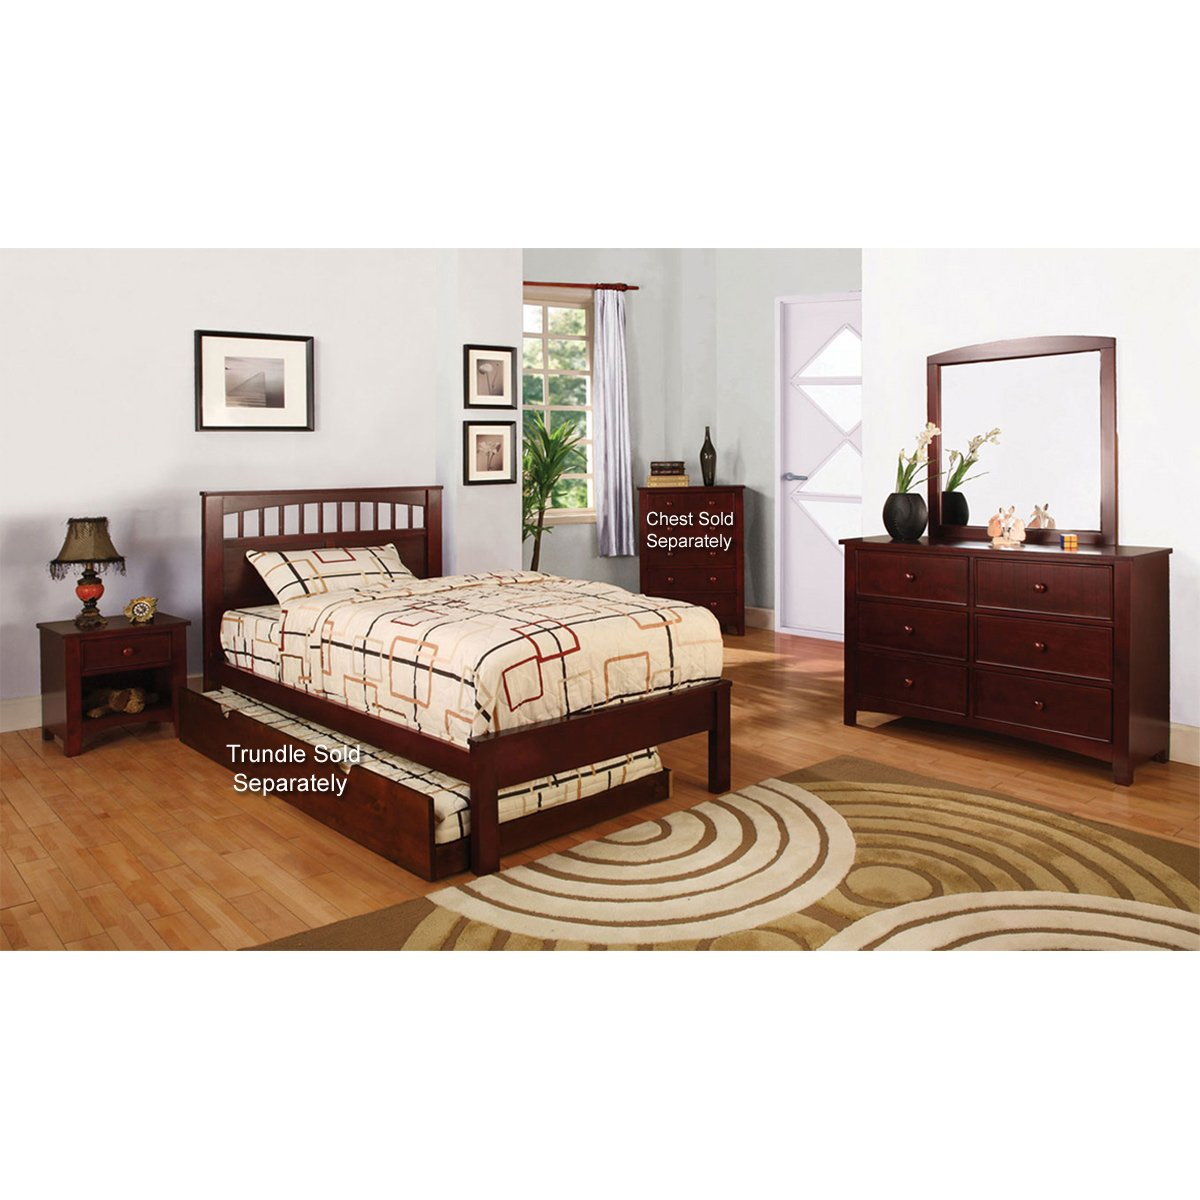 Bedroom Sets Furniture Stores: Carus 4 Piece Full Bedroom Set